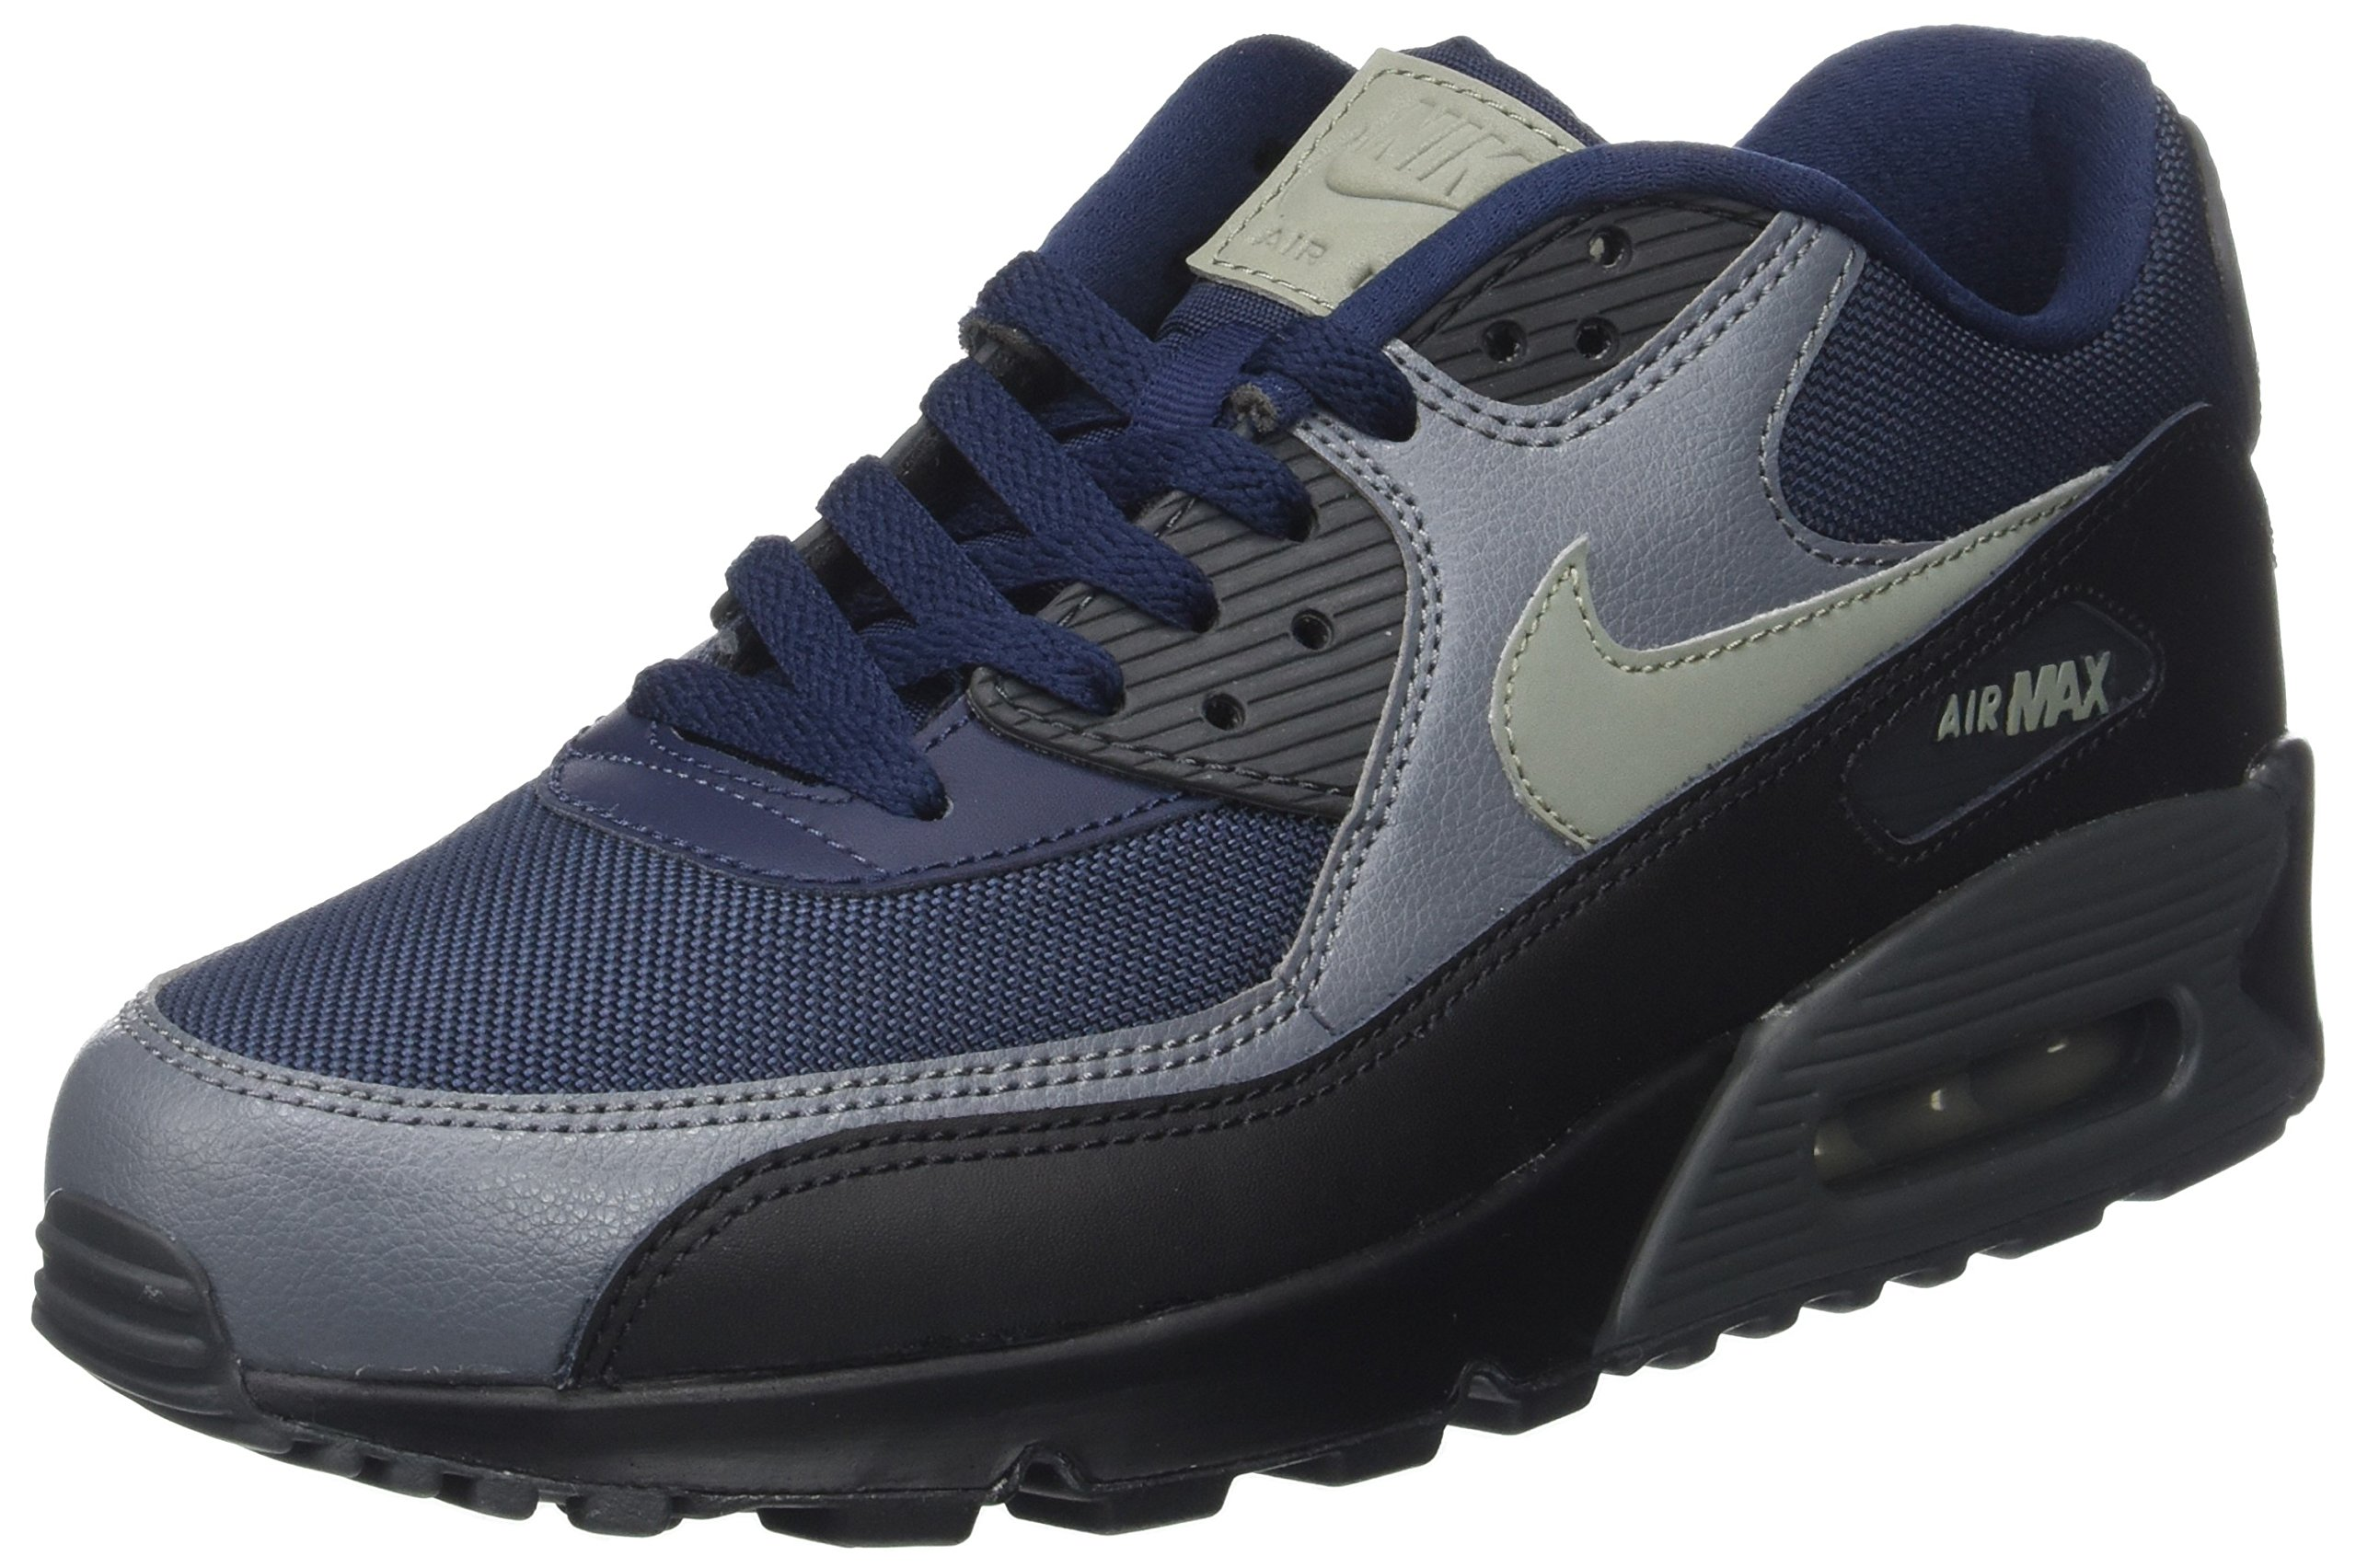 pretty nice 37493 739d6 Galleon - Nike Men s Air Max 90 Essential, Obsidian Dark Stucco-Black, 9.5  M US